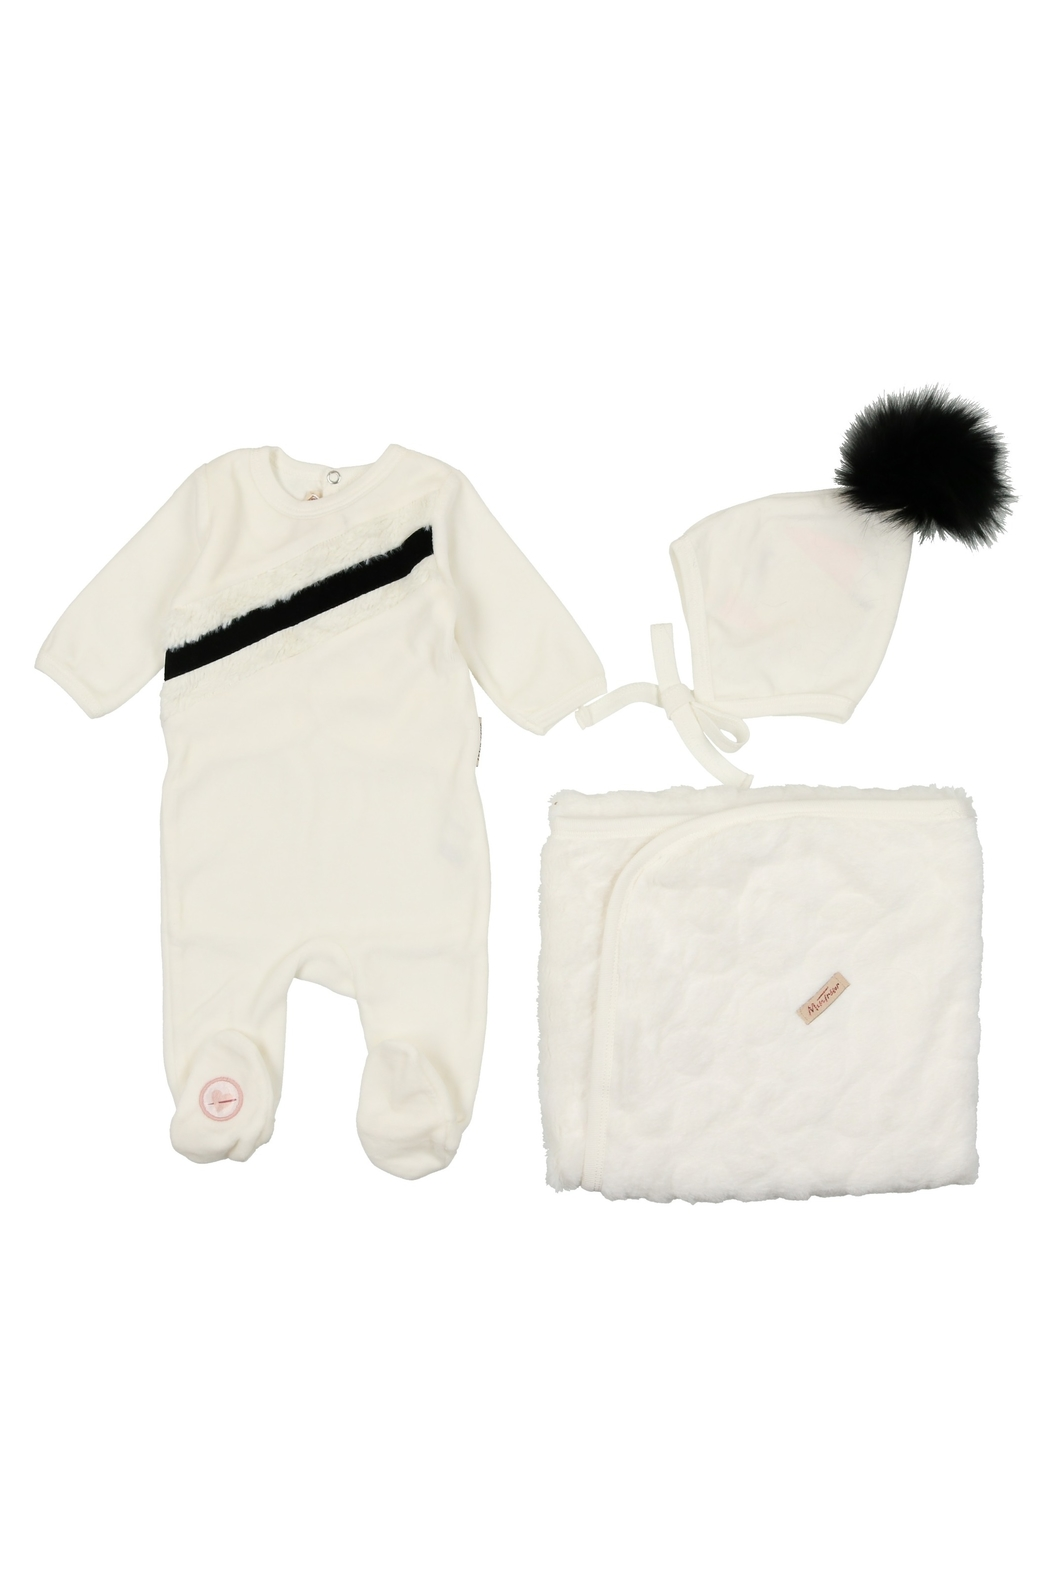 MON TRESOR  INFANT BABY LAYETTE BY BEBE - Front Cropped Image